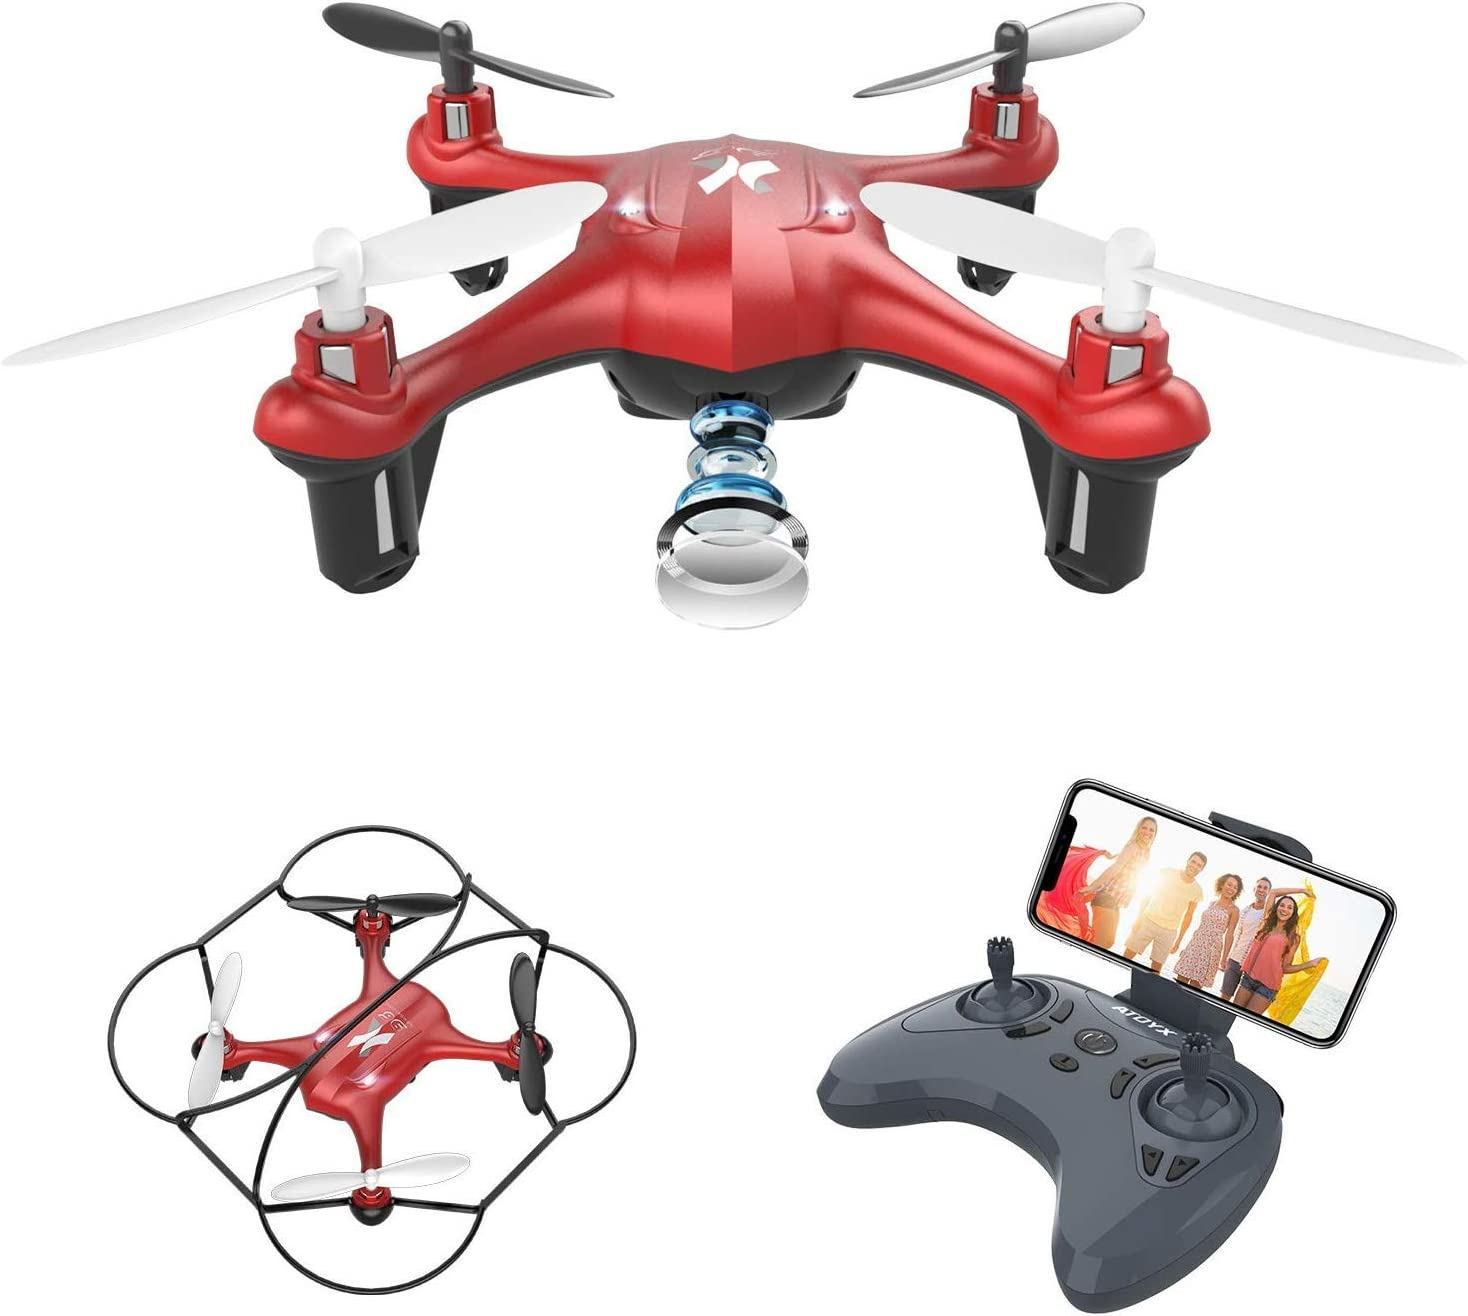 3D Flip//Flashing LED Gravity Sensor One Key Take Off//Landing Christmas Gifts Toys for Boys and Girls Mini Drone for Kids Hand Operated Remote Control Drone Small RC Quadcopter Flying Drones